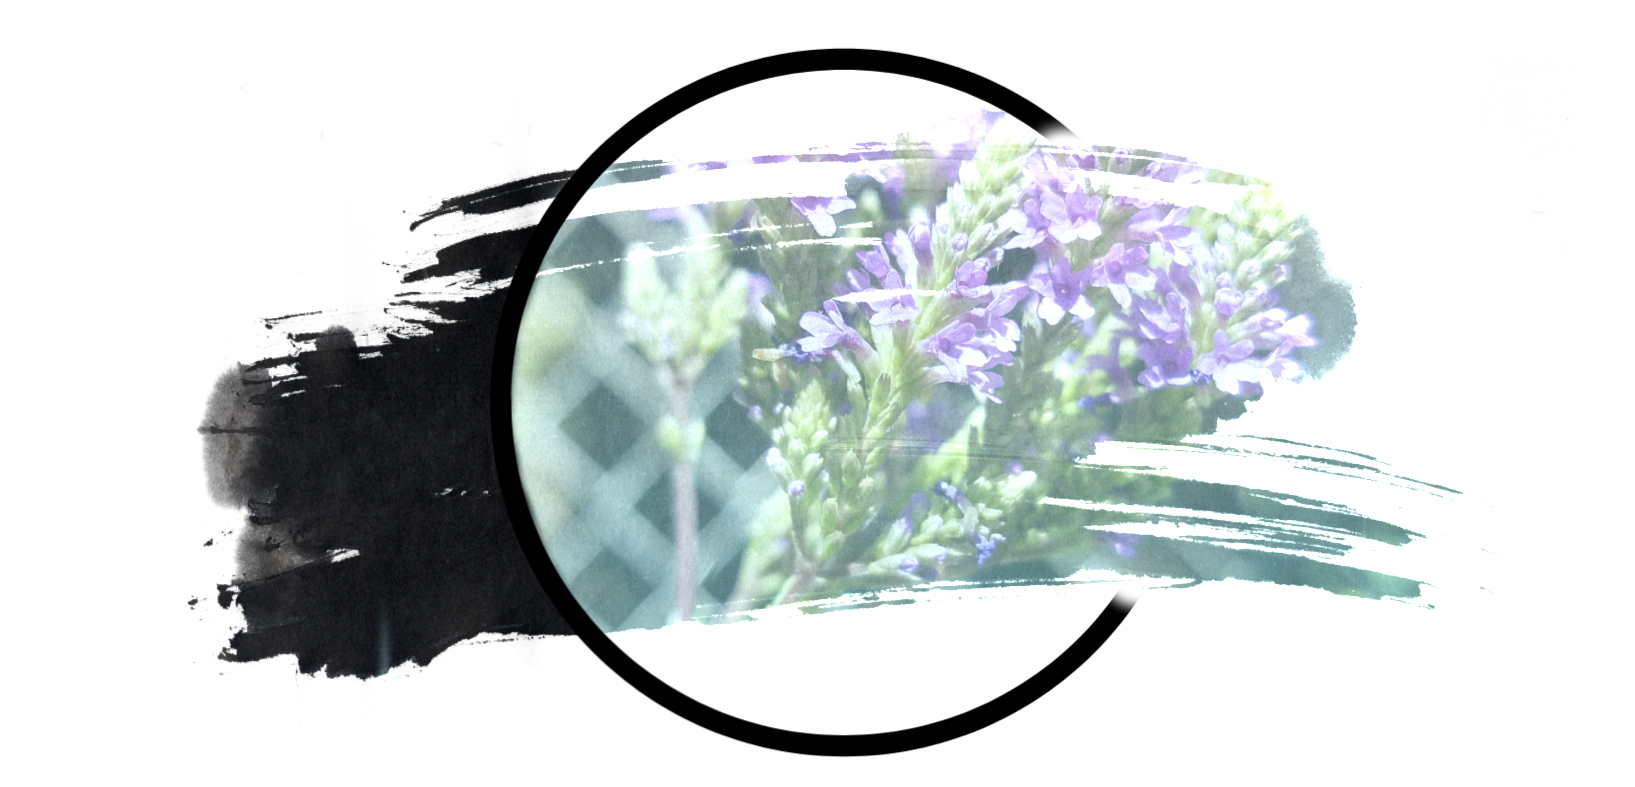 a brushstroke shaped image of blue vervain flowers with a blurred fence in the background and a large back circle around the image